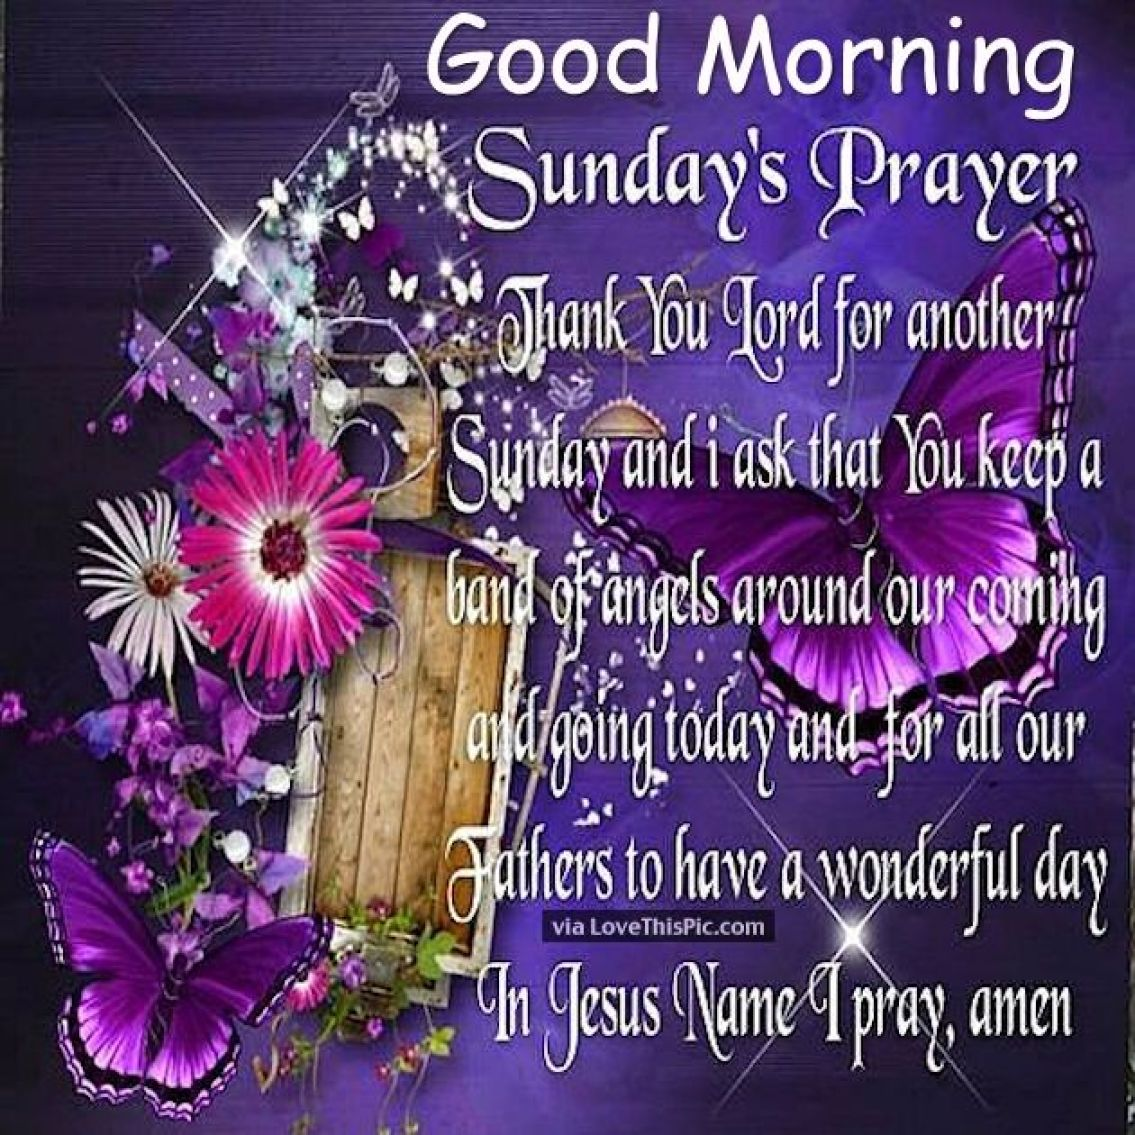 Good Morning Sunday Prayer Pictures, Photos, and Images for Facebook,  Tumblr, Pinterest, and Twitter